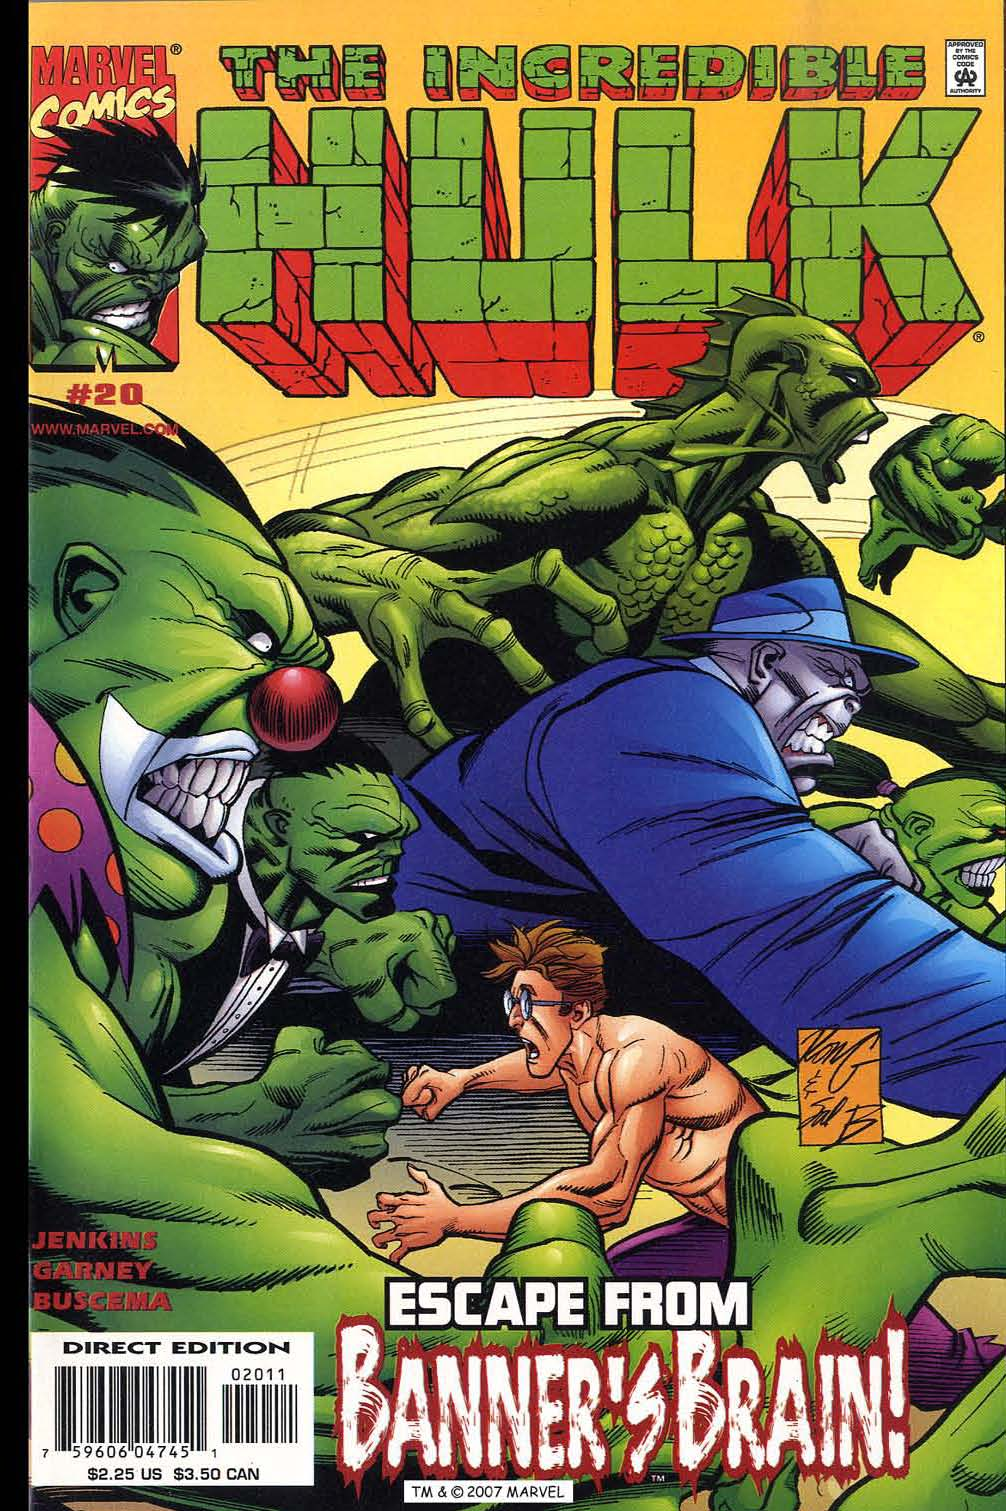 Read online The Incredible Hulk (2000) comic -  Issue #20 - 1